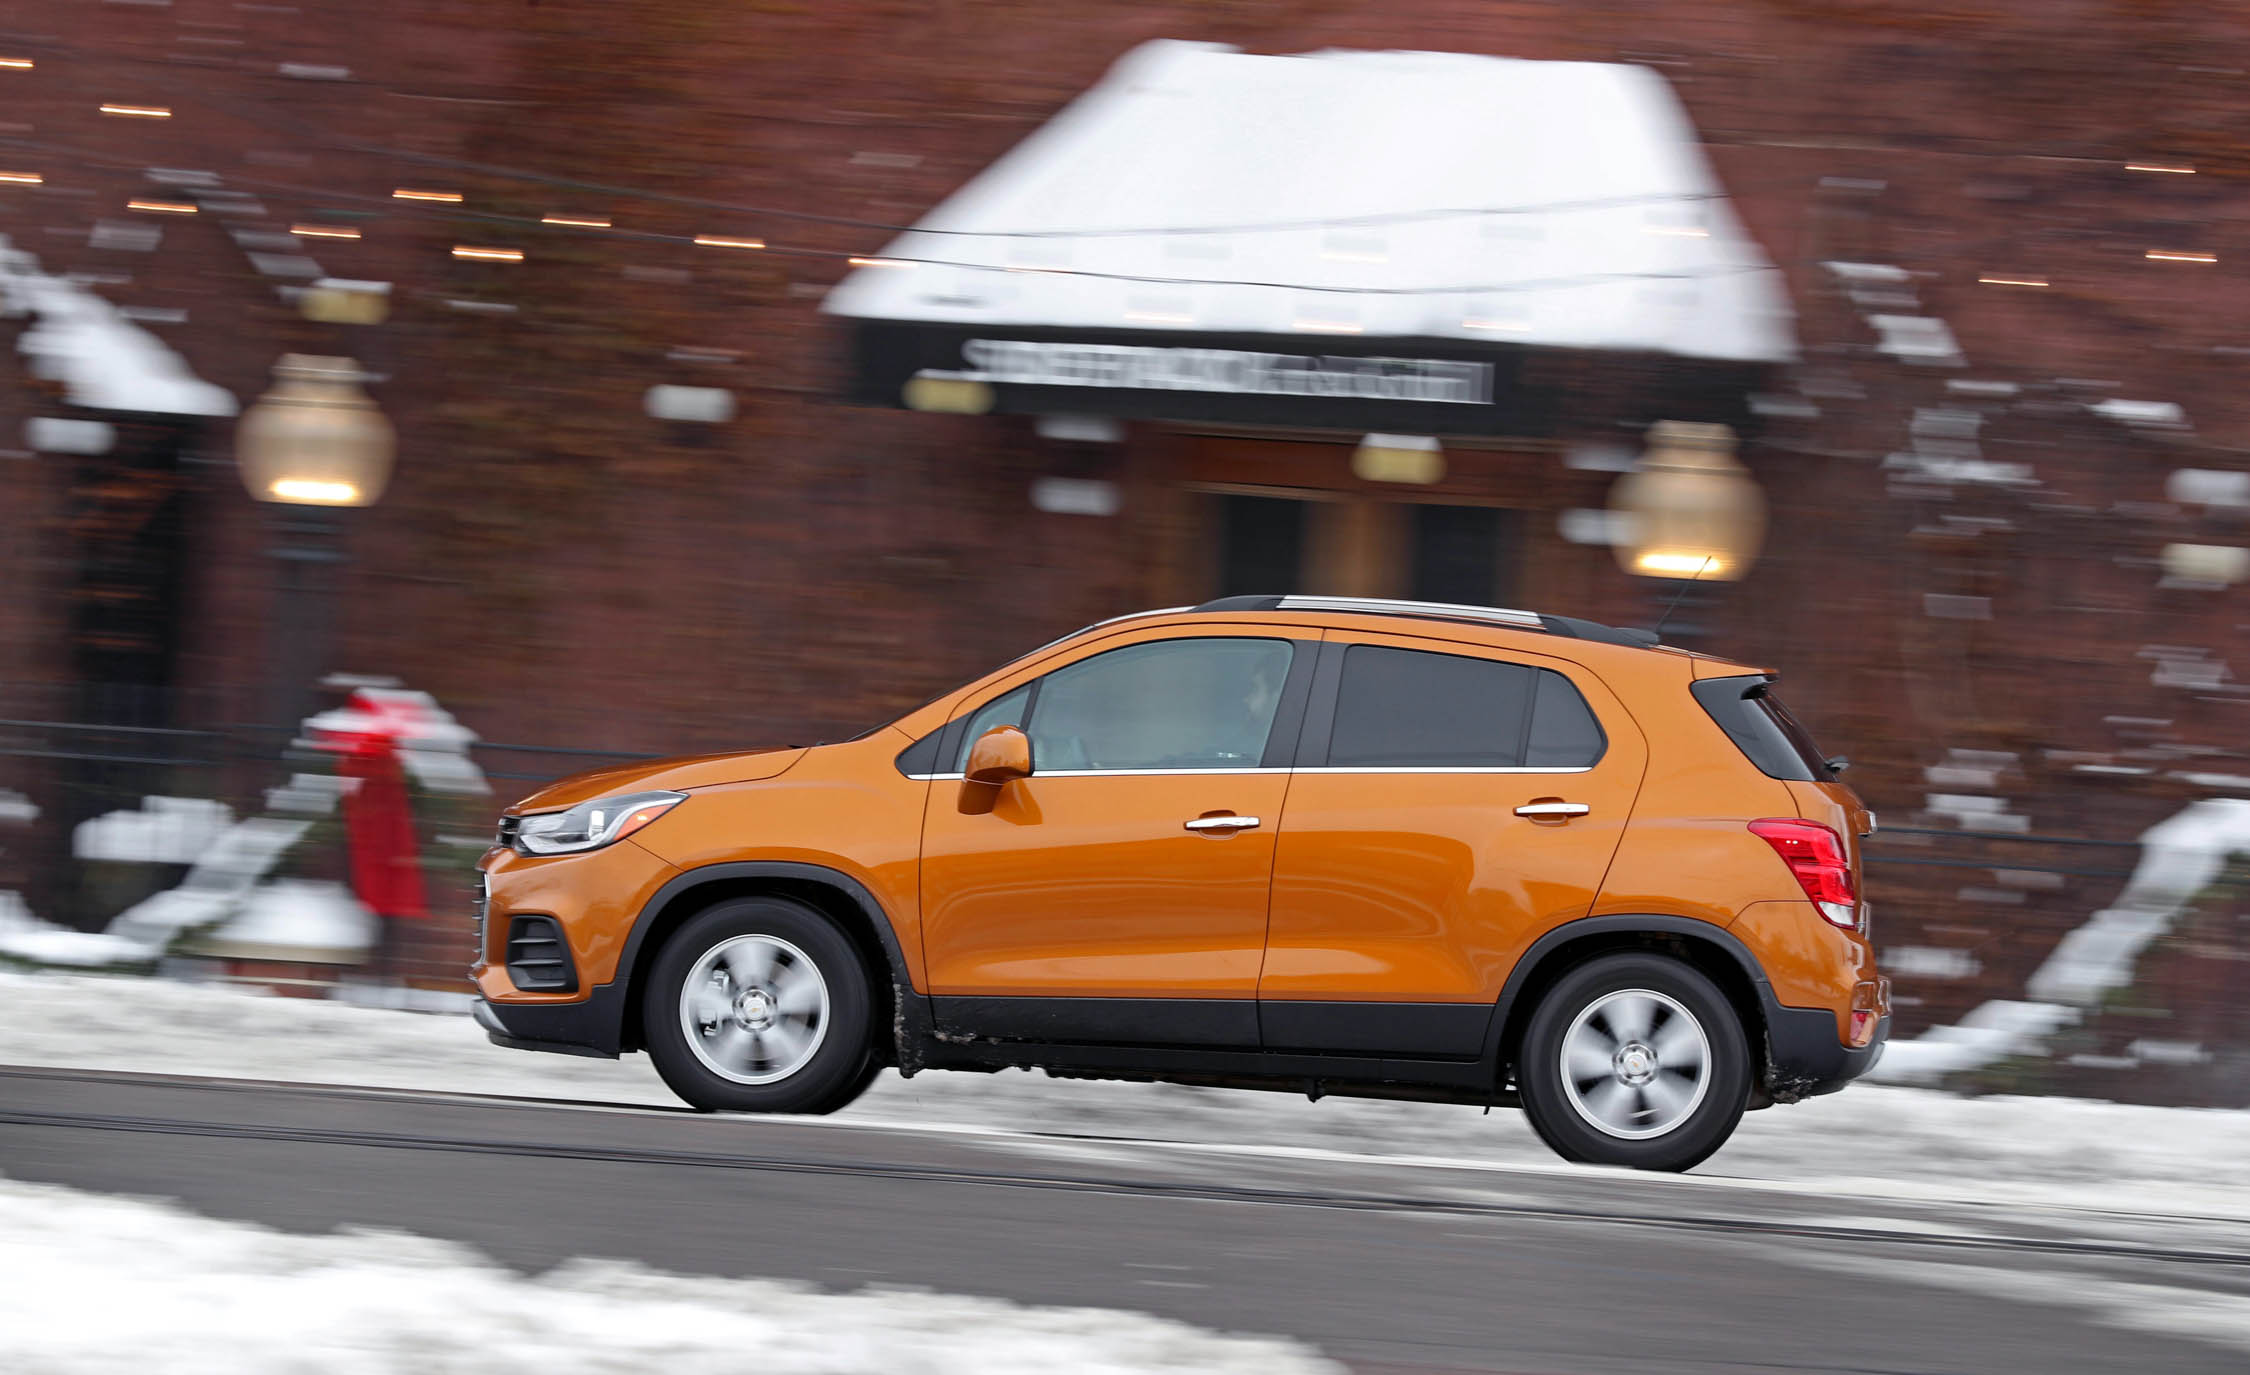 2017 Chevrolet Trax Test Drive Side Preview (Photo 3 of 47)